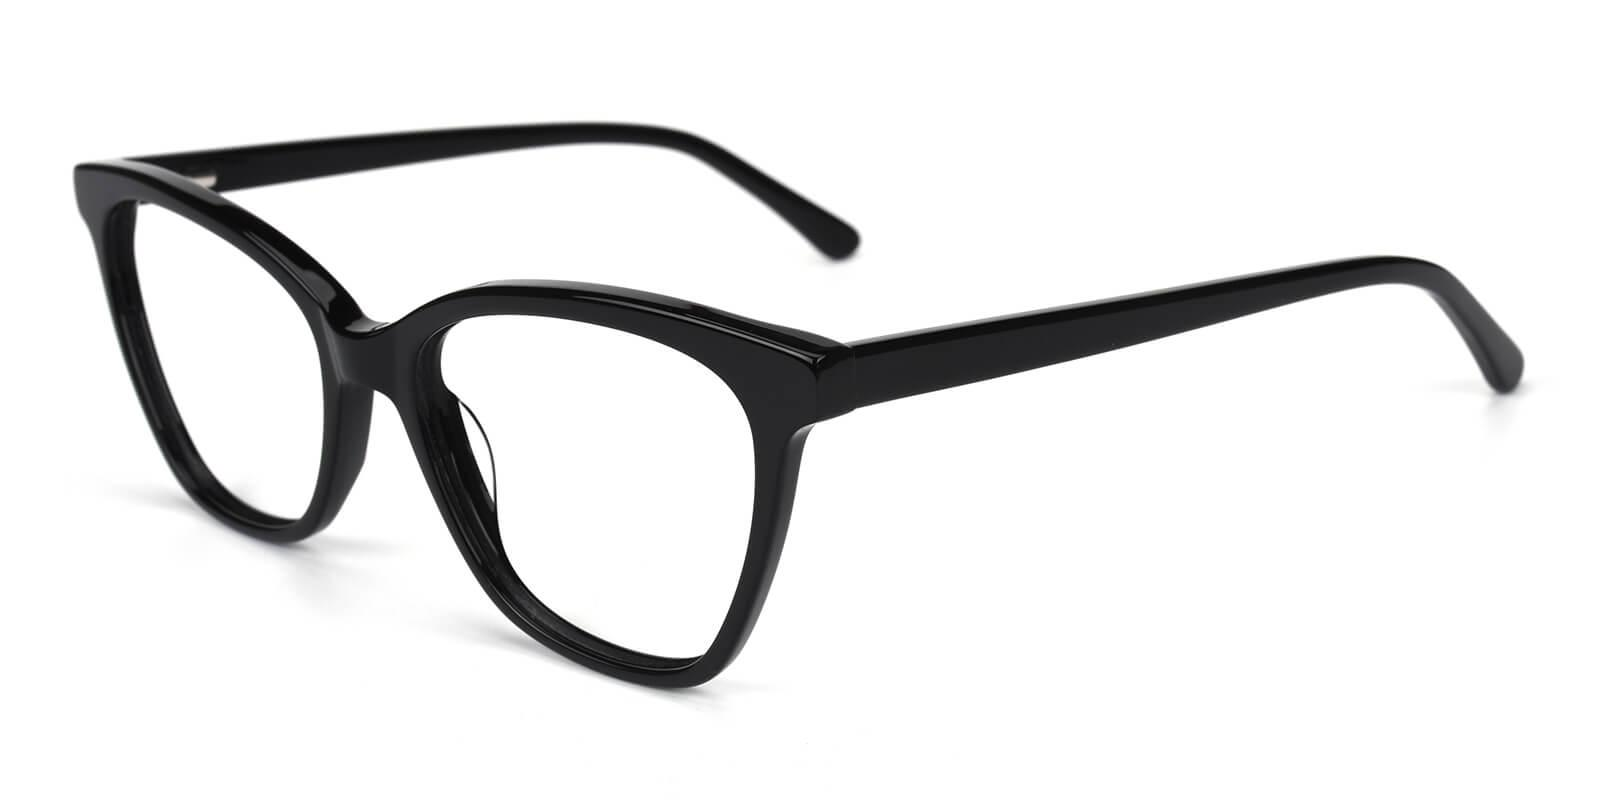 Castely-Black-Cat-Acetate-Eyeglasses-additional1